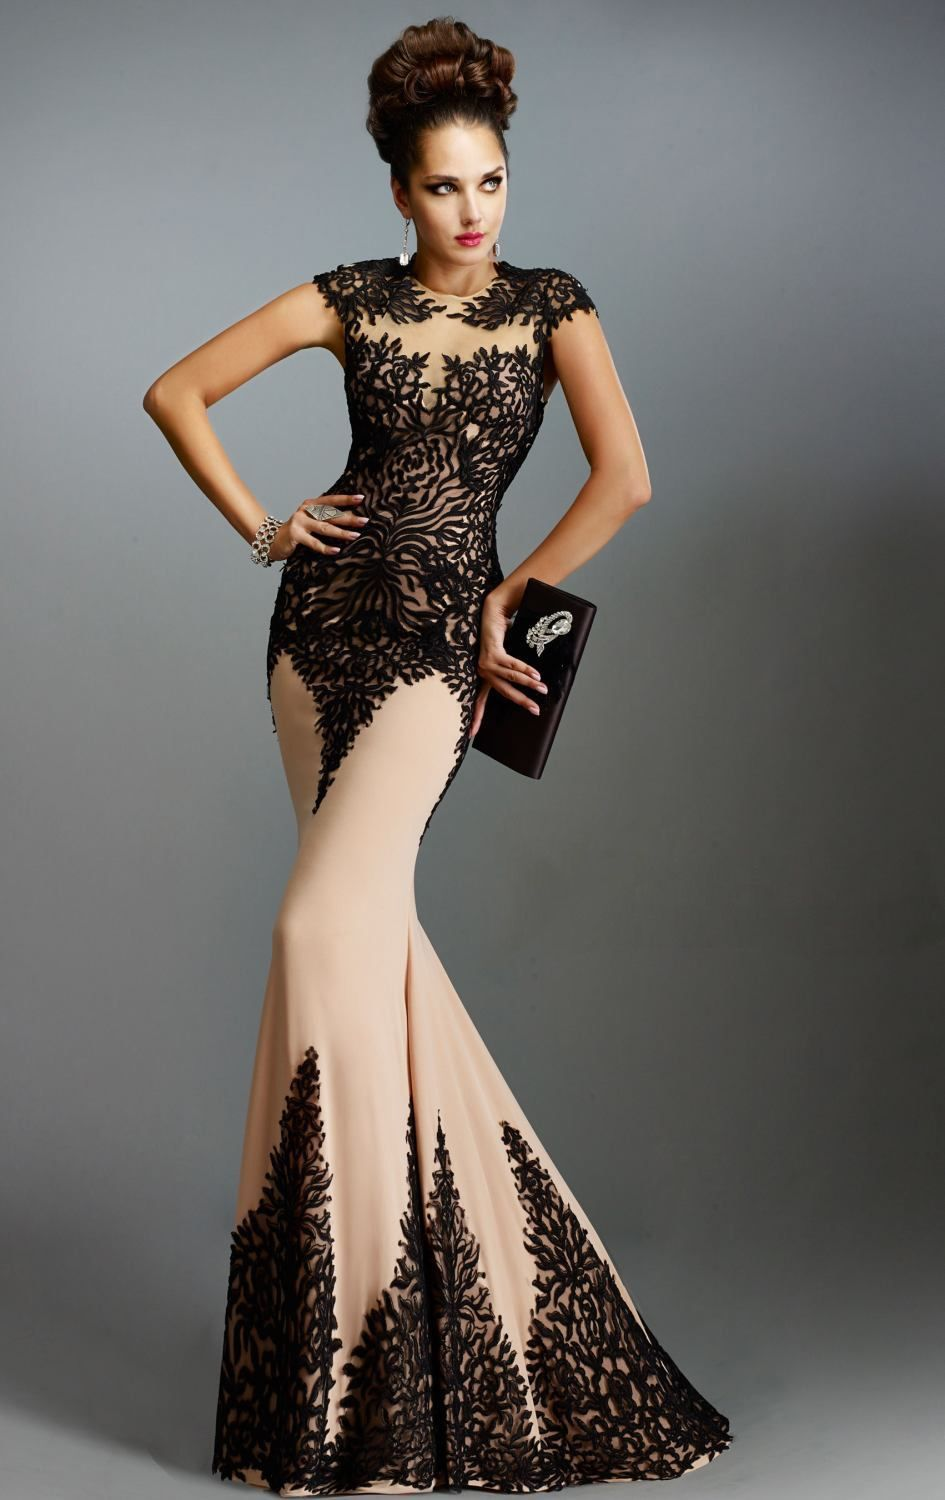 Pin On Prom Dresses I Like In 2016 Style